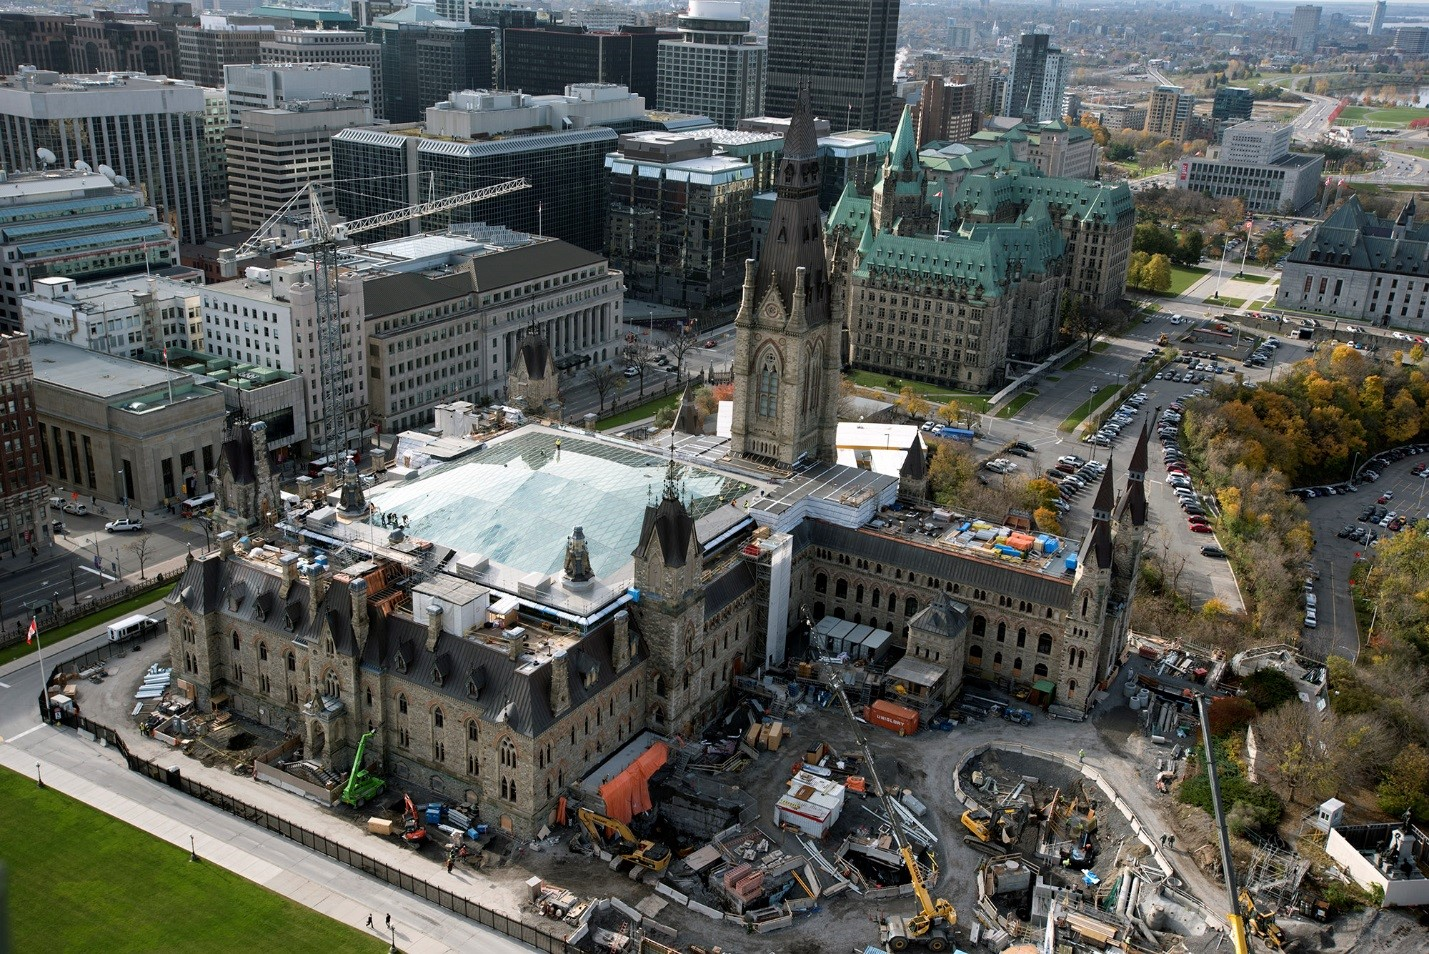 View enlarged image of an aerial photo of a building surrounded by construction vehicles and equipment.